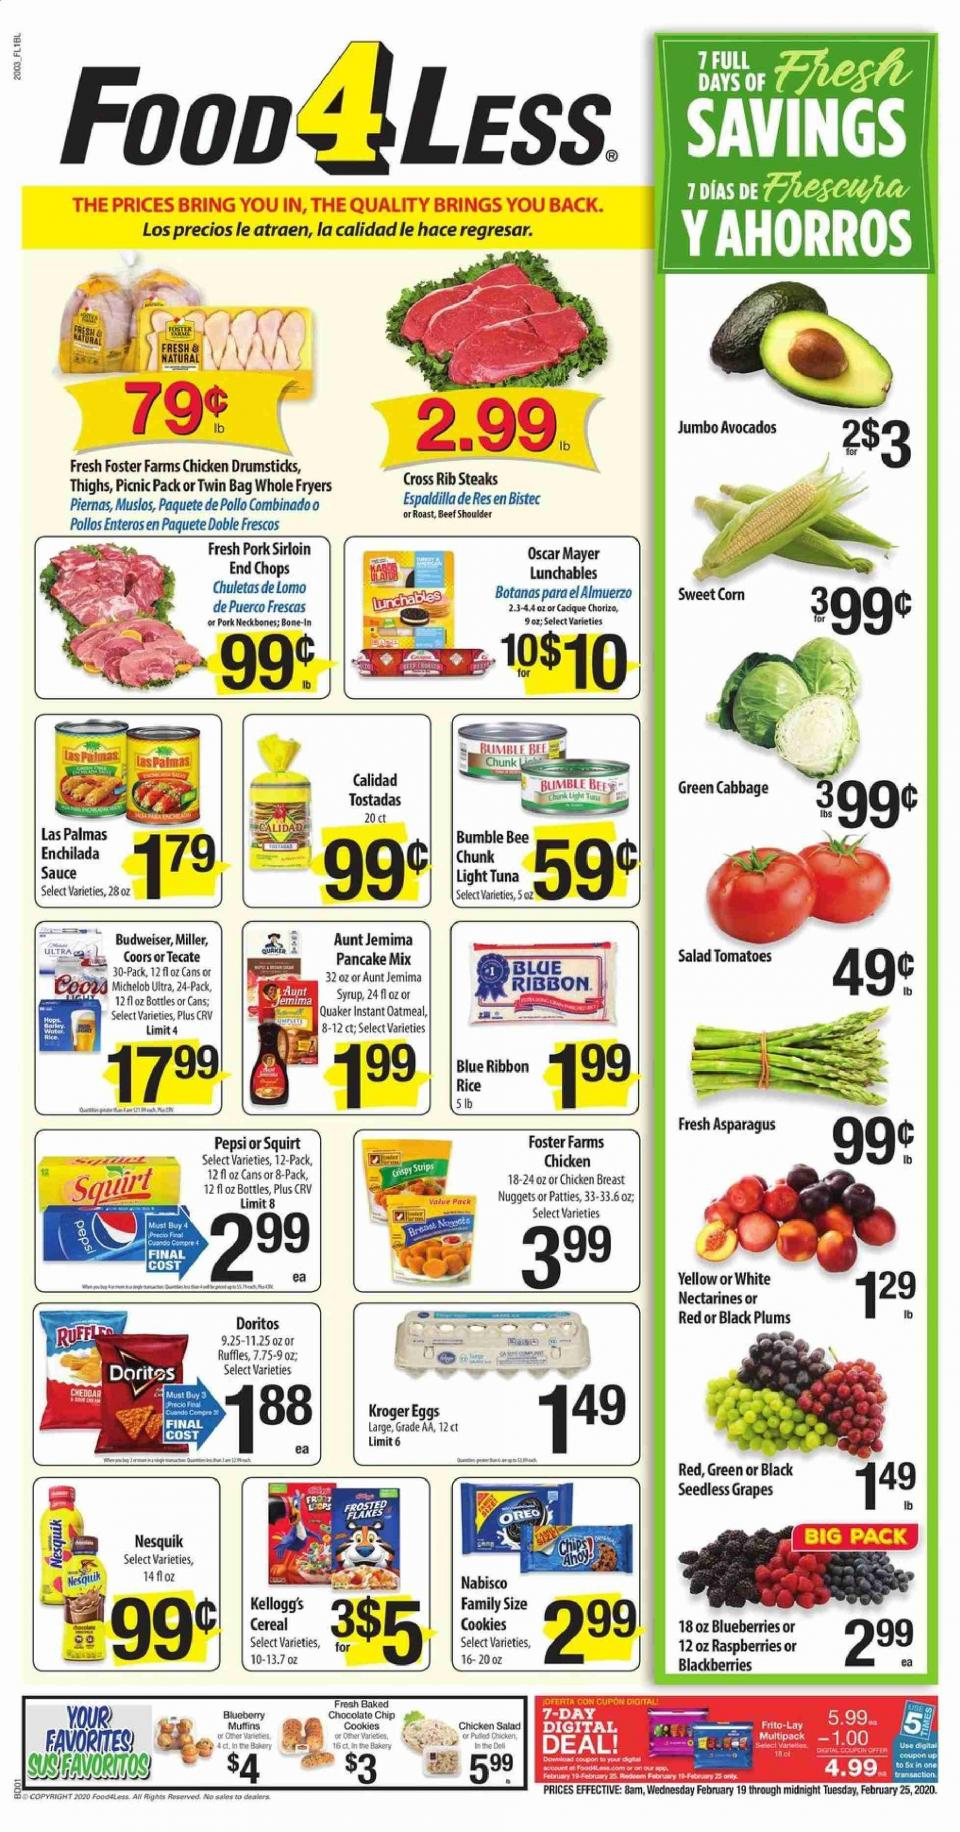 Food 4 Less Final February Ad valid from 19 – 25, 2020.